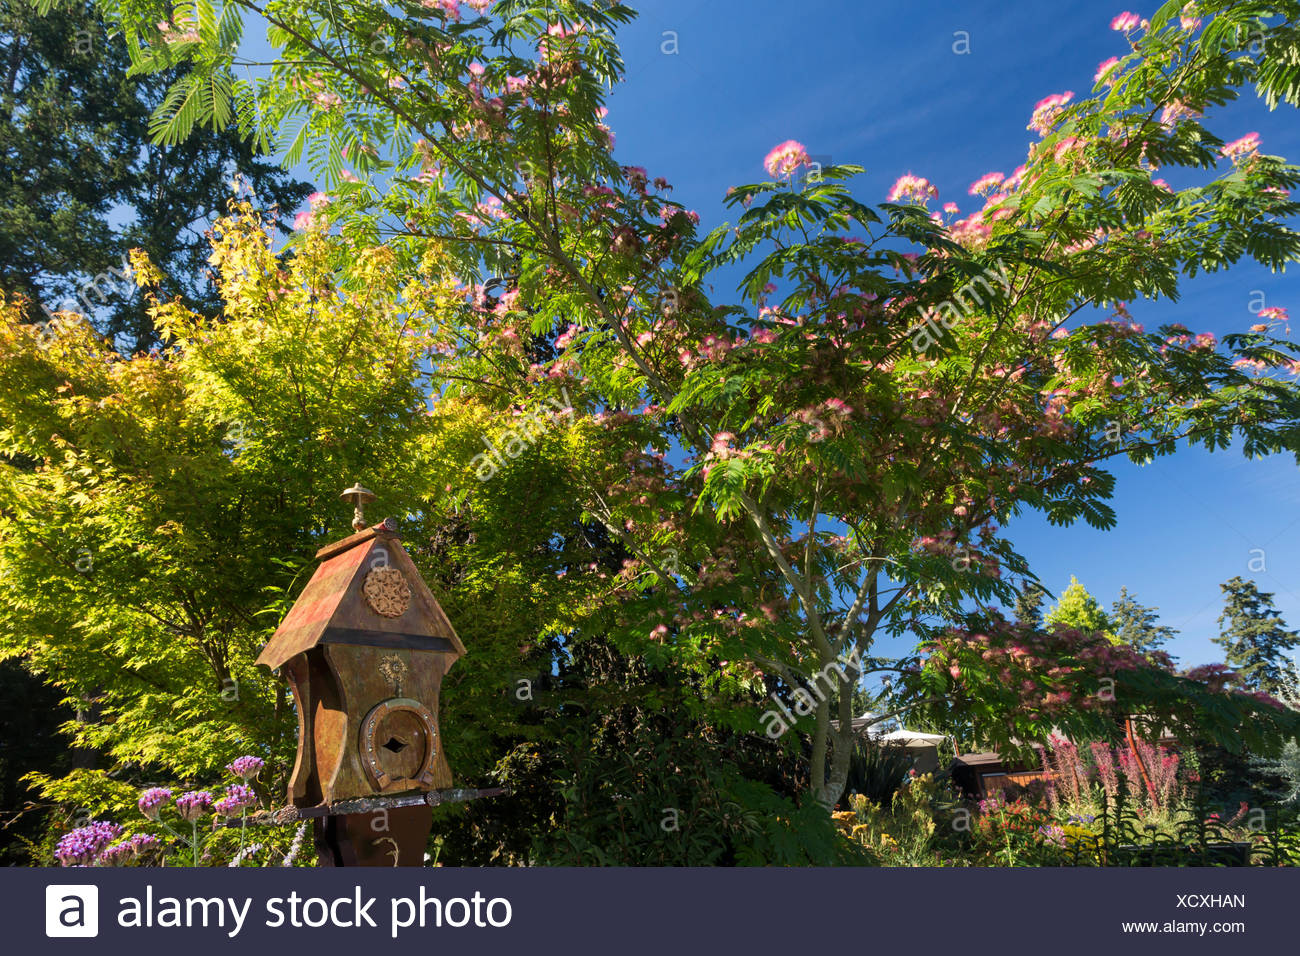 Located 12 kms north of downtown Victoria, the Horticultural Centre of the Pacific welcomes visitors to it's public gardens, cared for by volunteers, staff and students.  Victoria, Vancouver Island, British Columbia Stock Photo